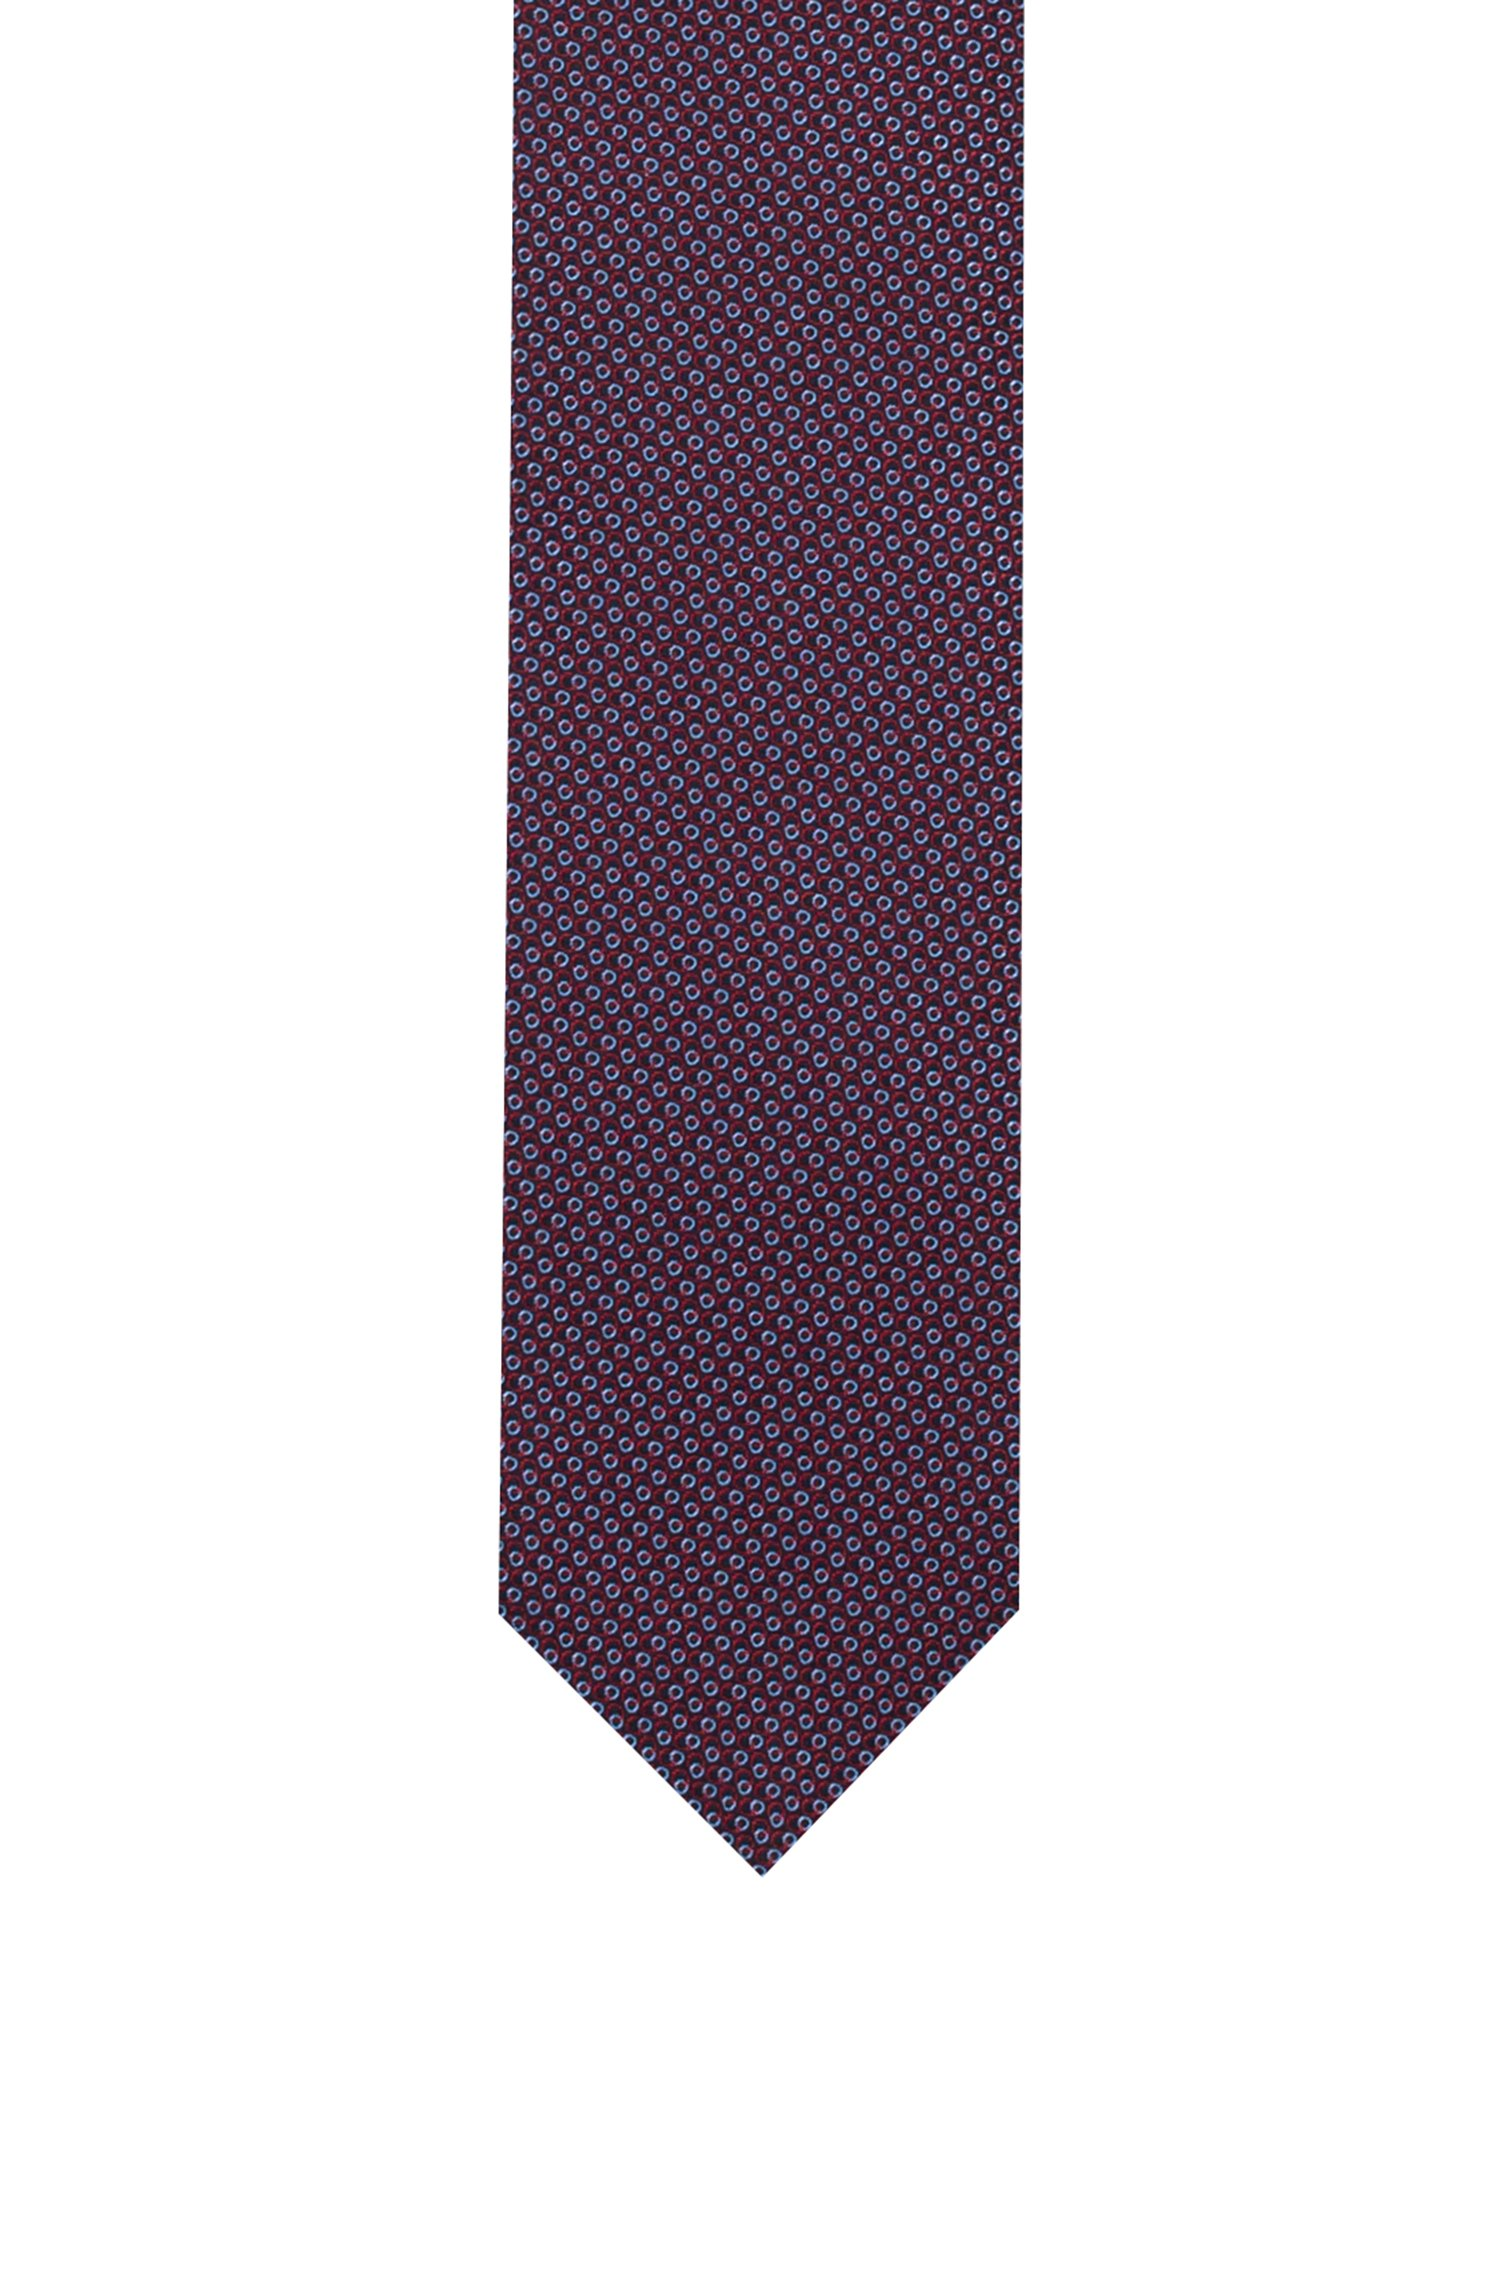 Micro-patterned tie in silk jacquard, Pink Patterned